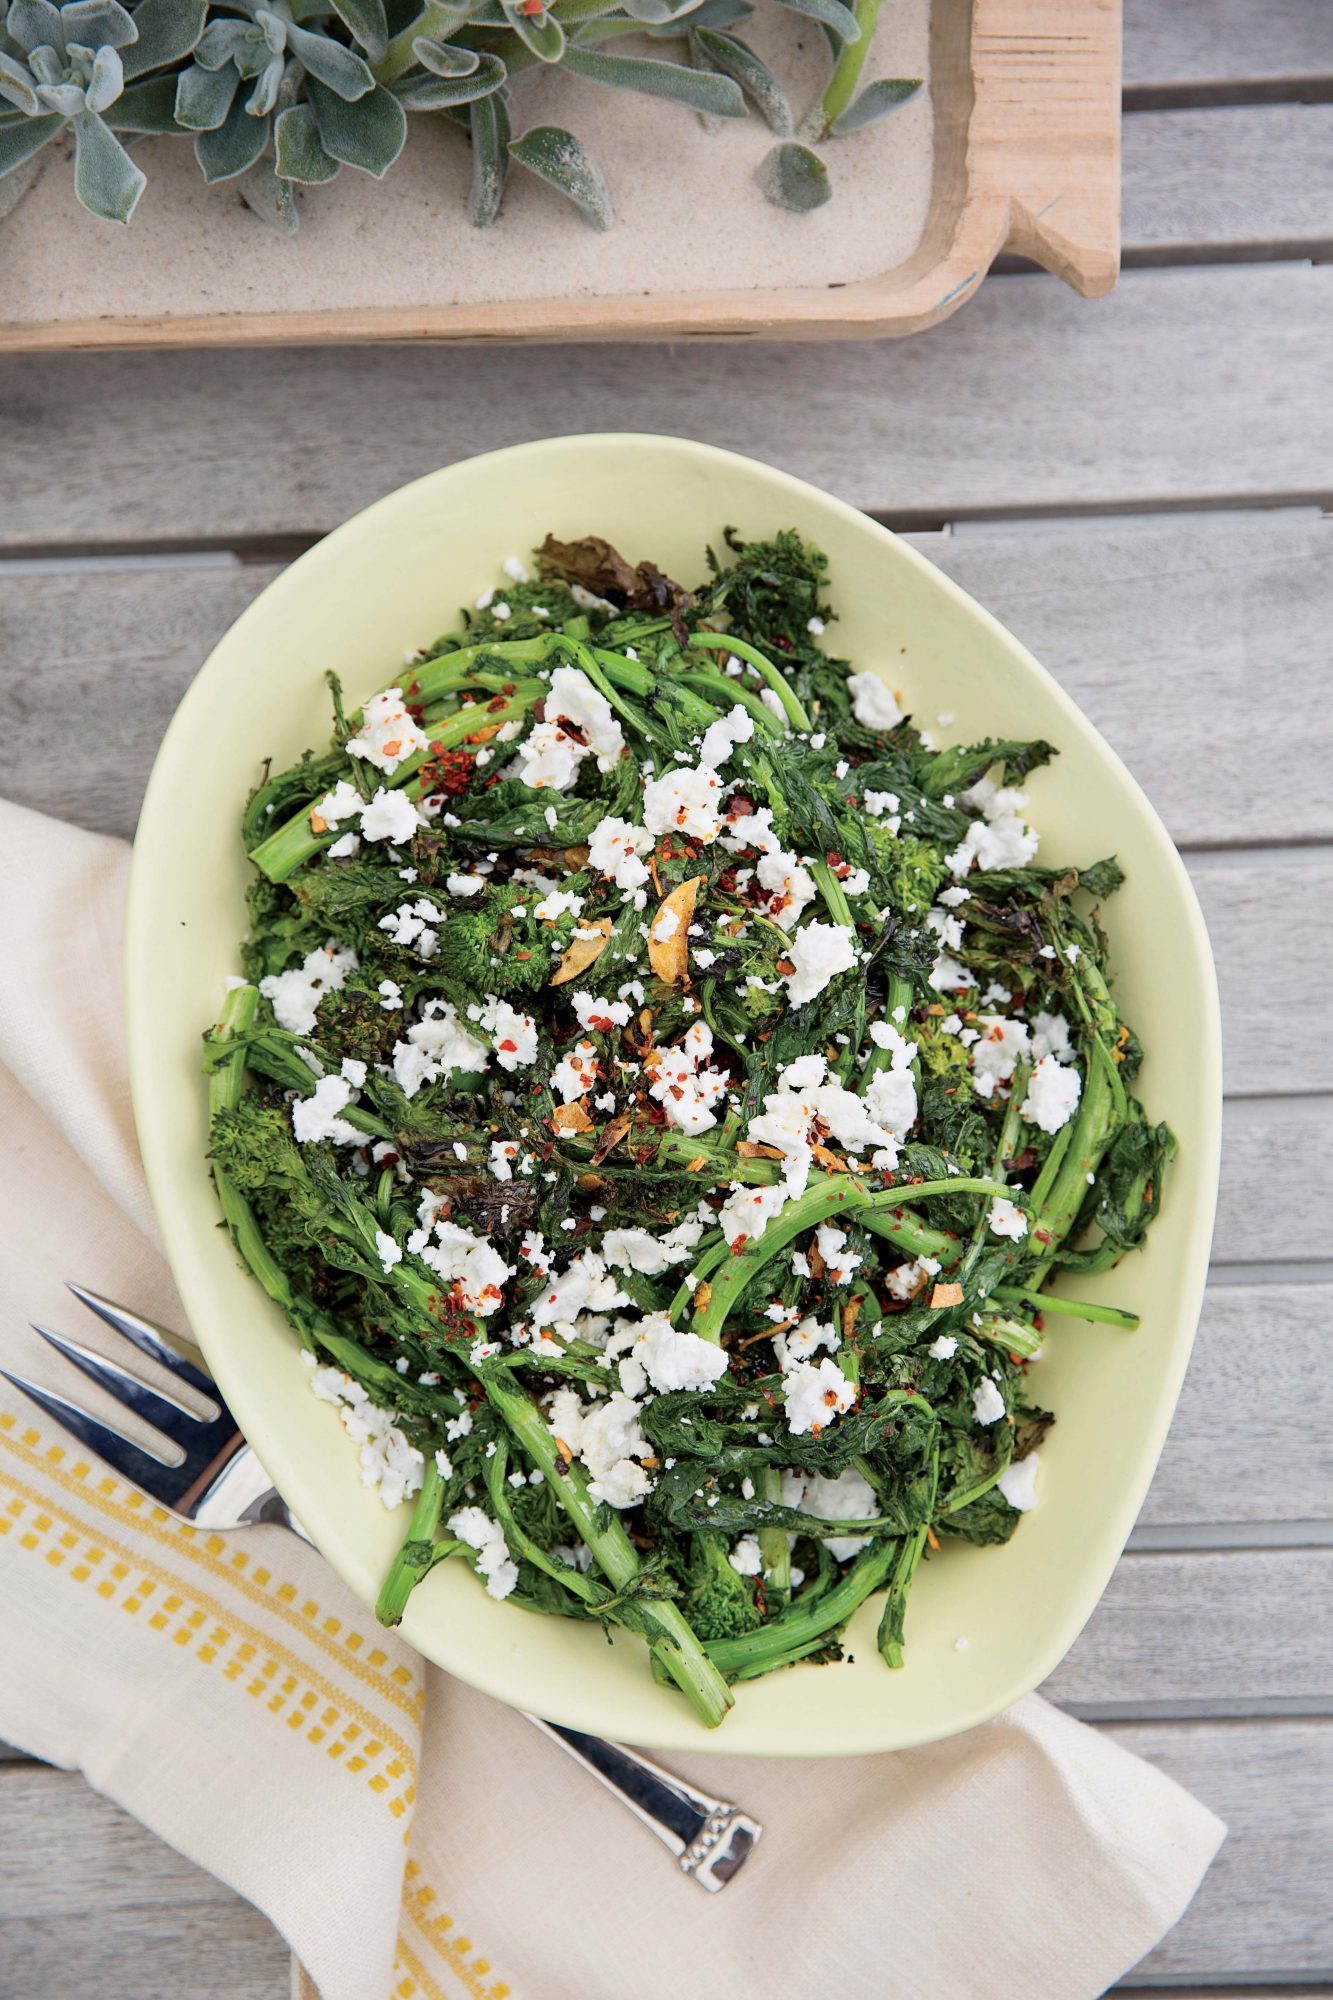 Grilled Broccoli Rabe with Feta and Crushed Red Pepper